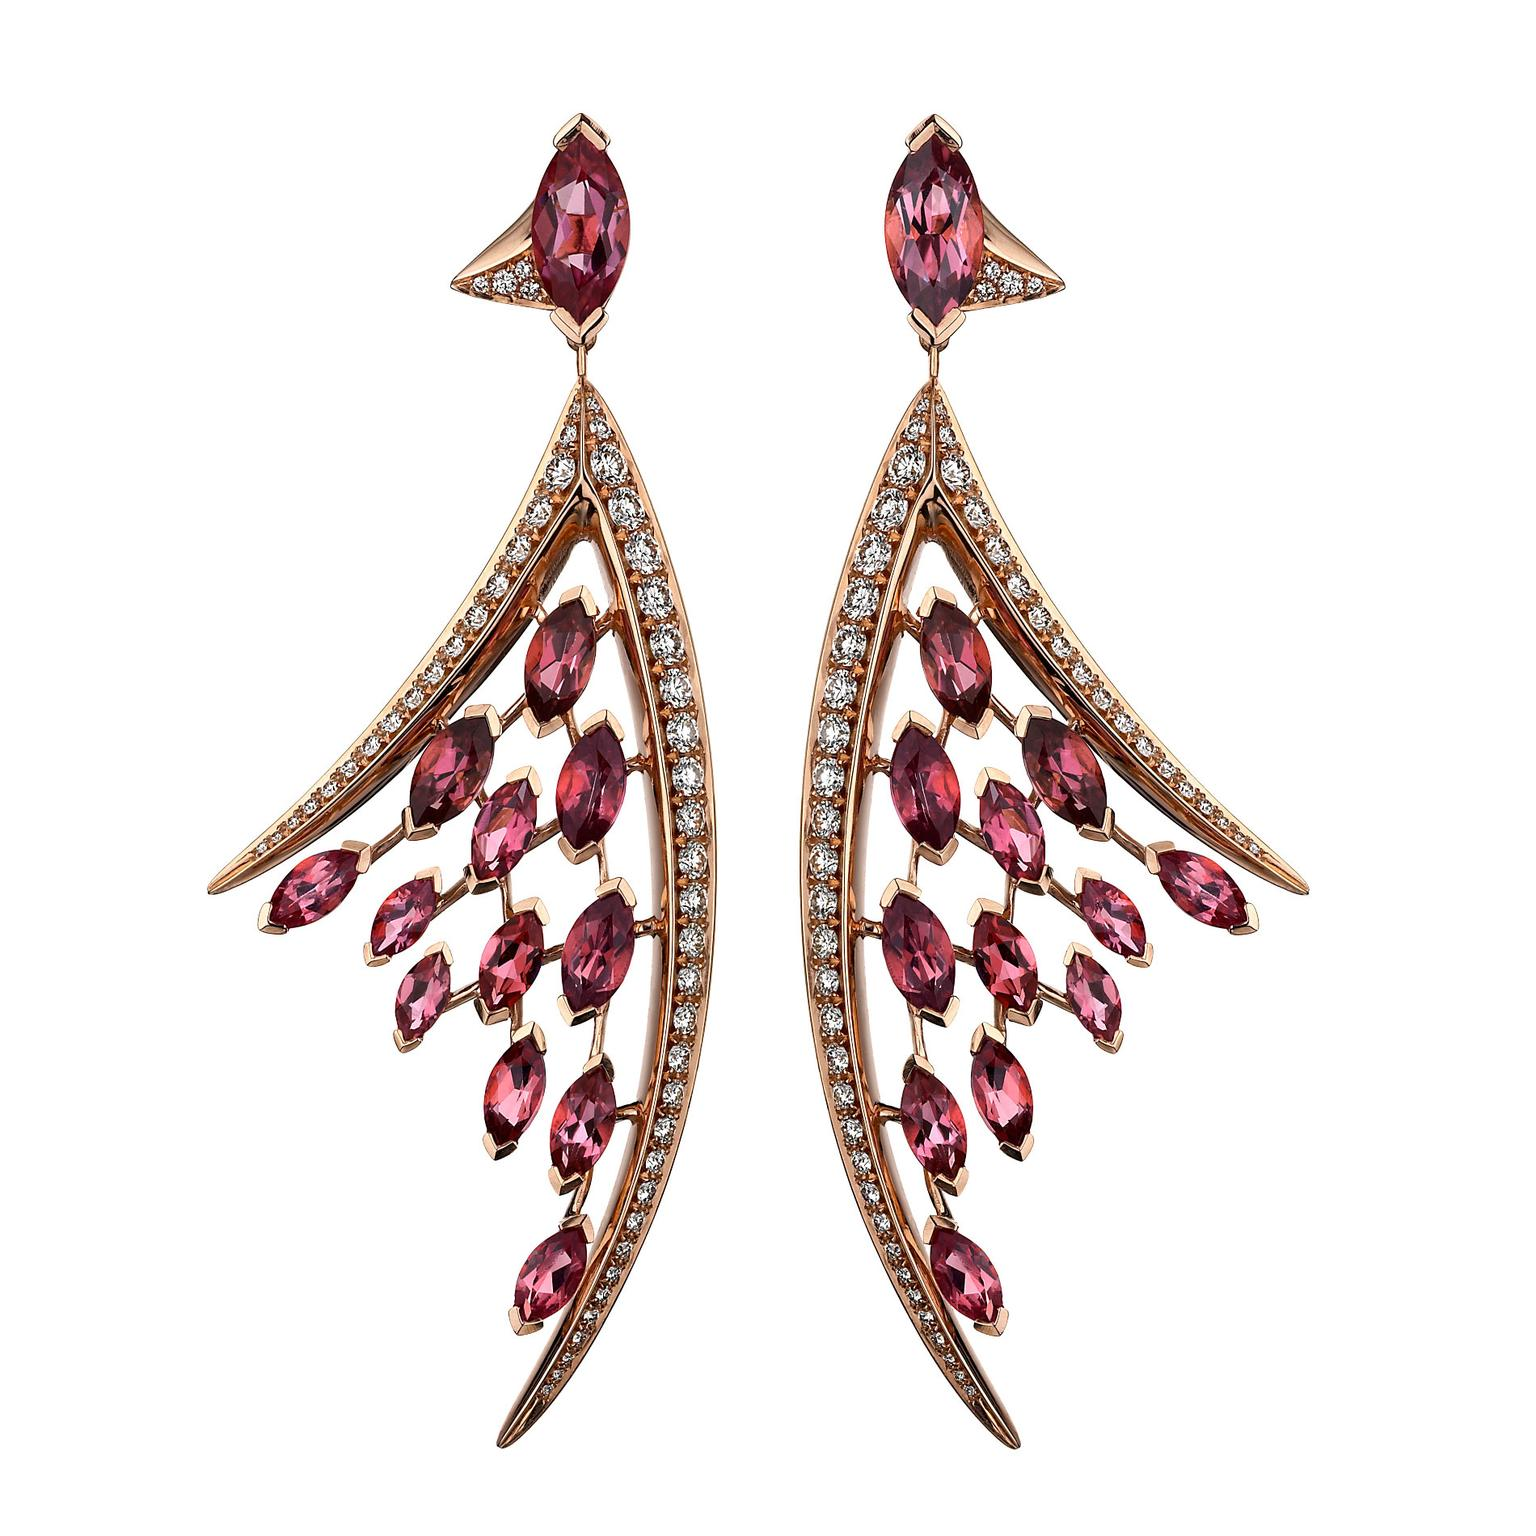 Aerial pink tourmaline and diamond earrings in rose gold | Shaun Leane |  The Jewellery Editor